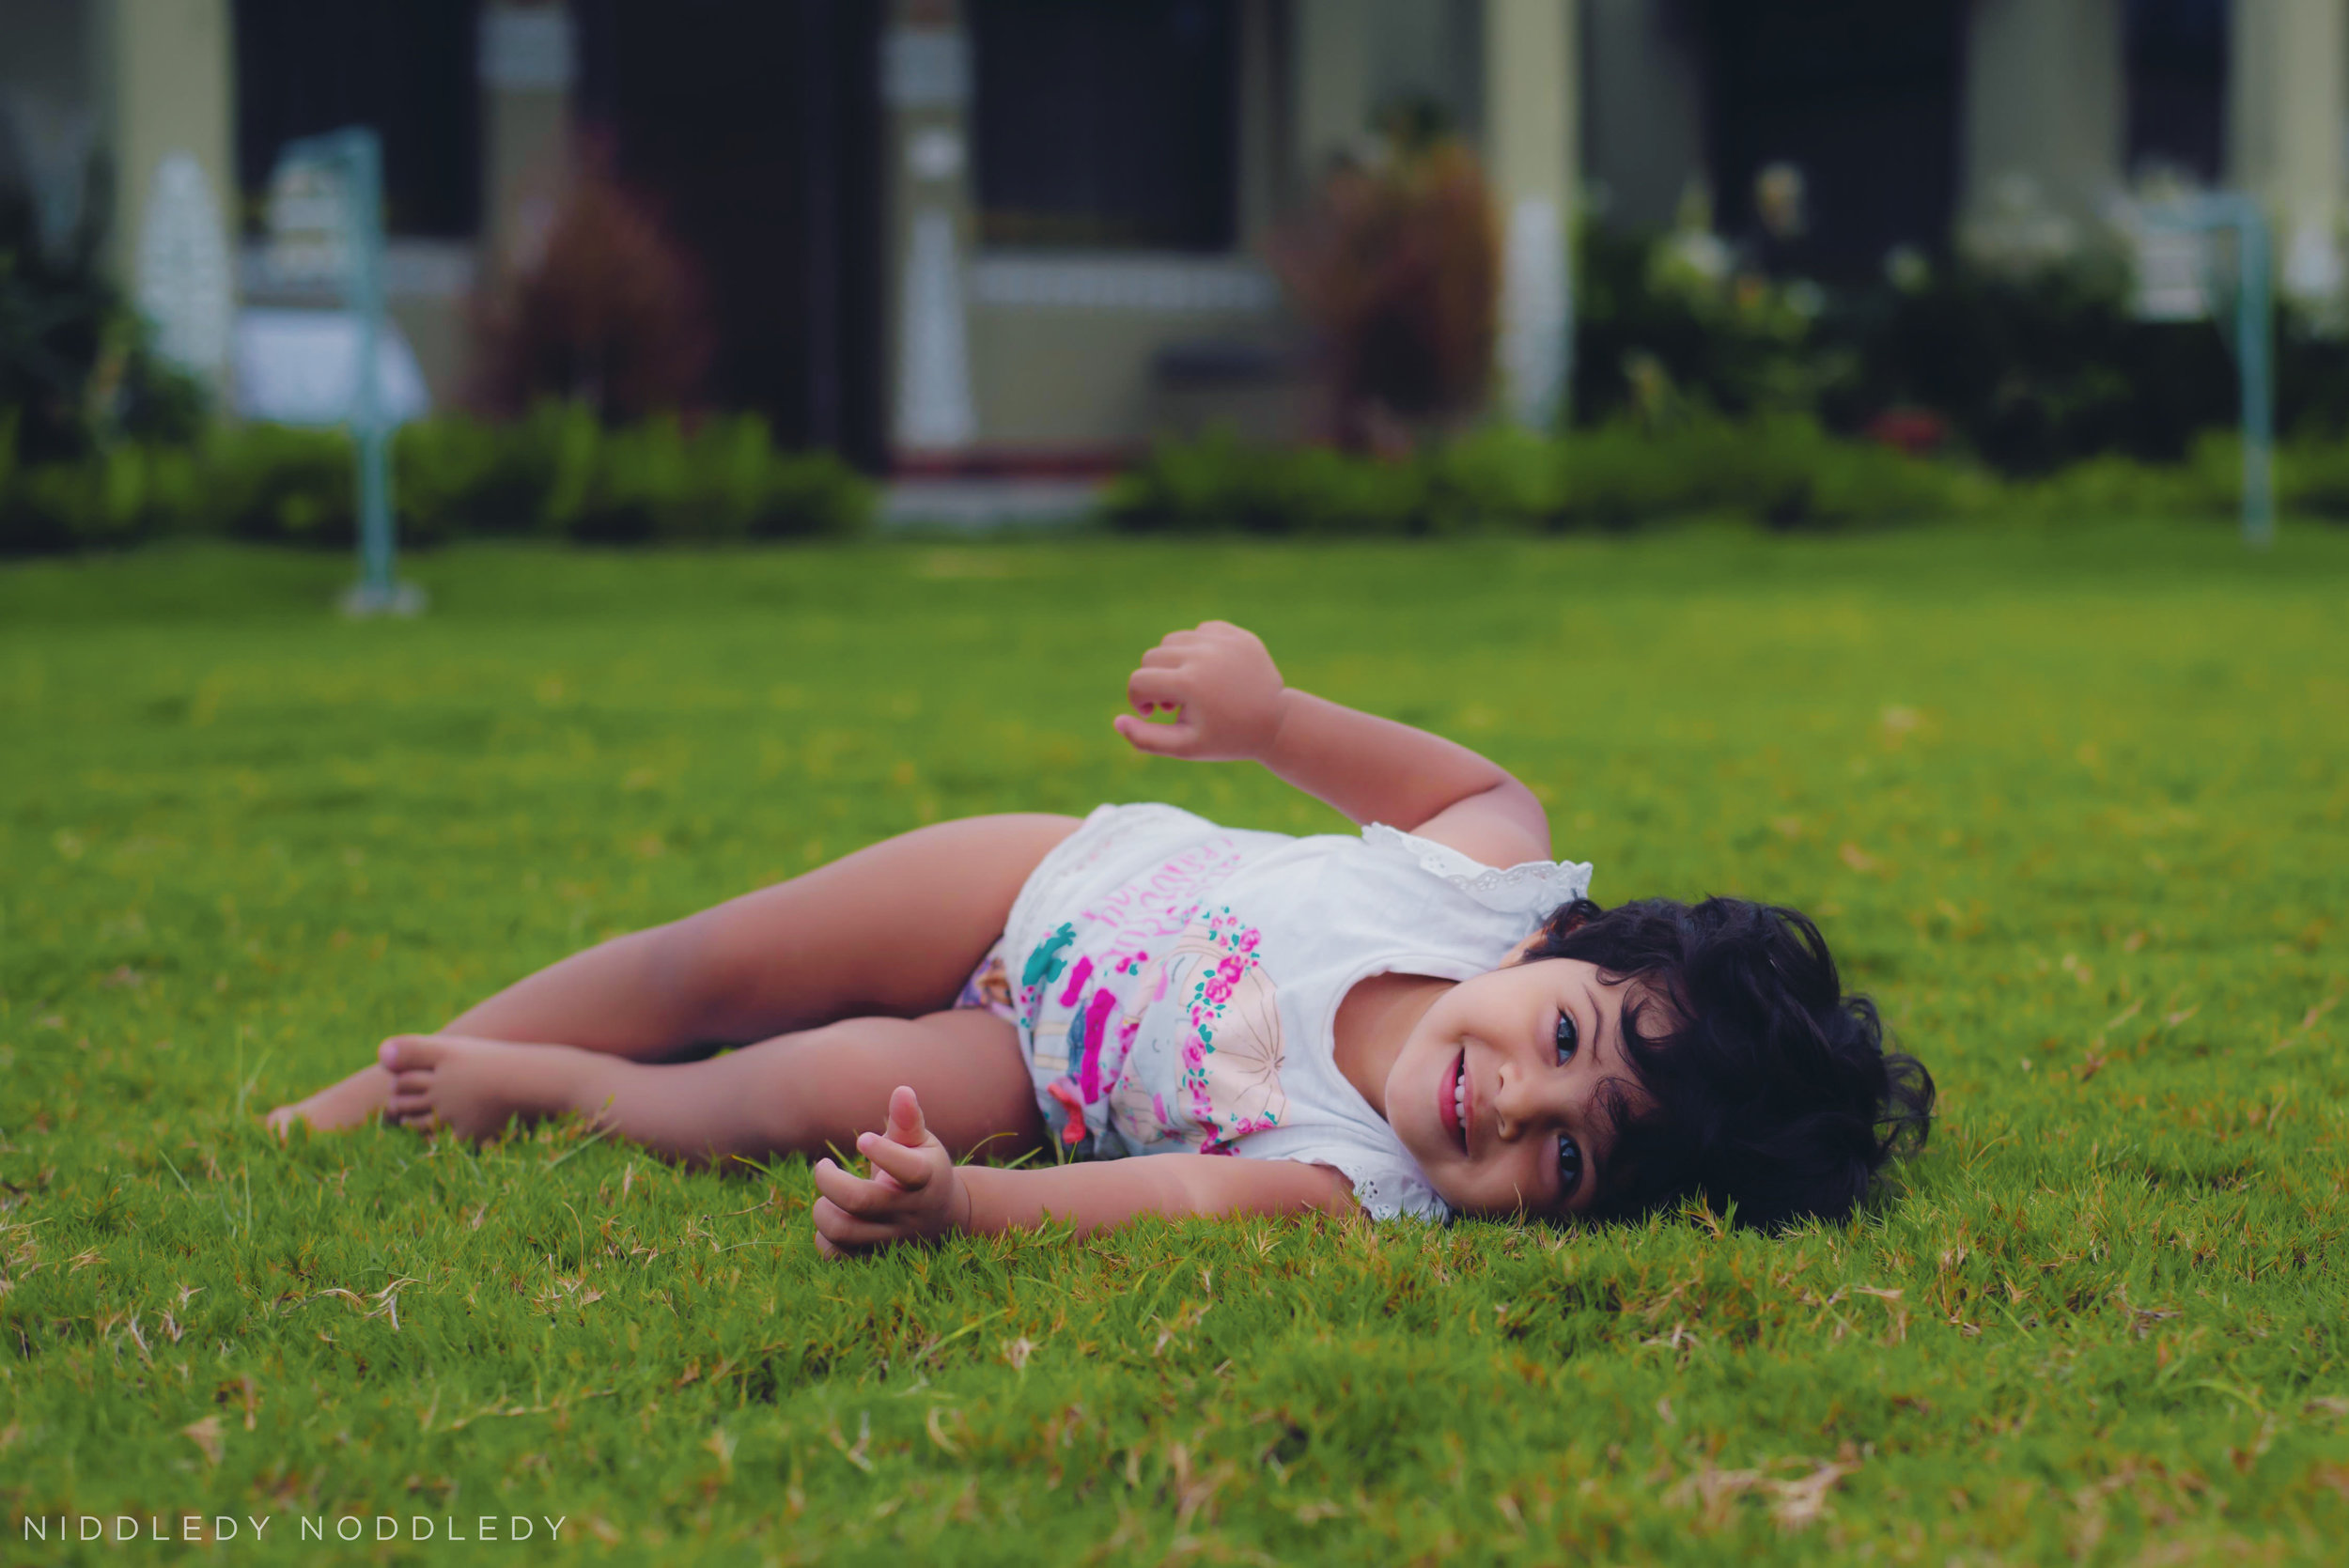 Maternity, Newborn and Children Photoshoots ❤ NiddledyNoddledy.com ~ Bellies and Babies Photography, Calcutta - 03.jpg